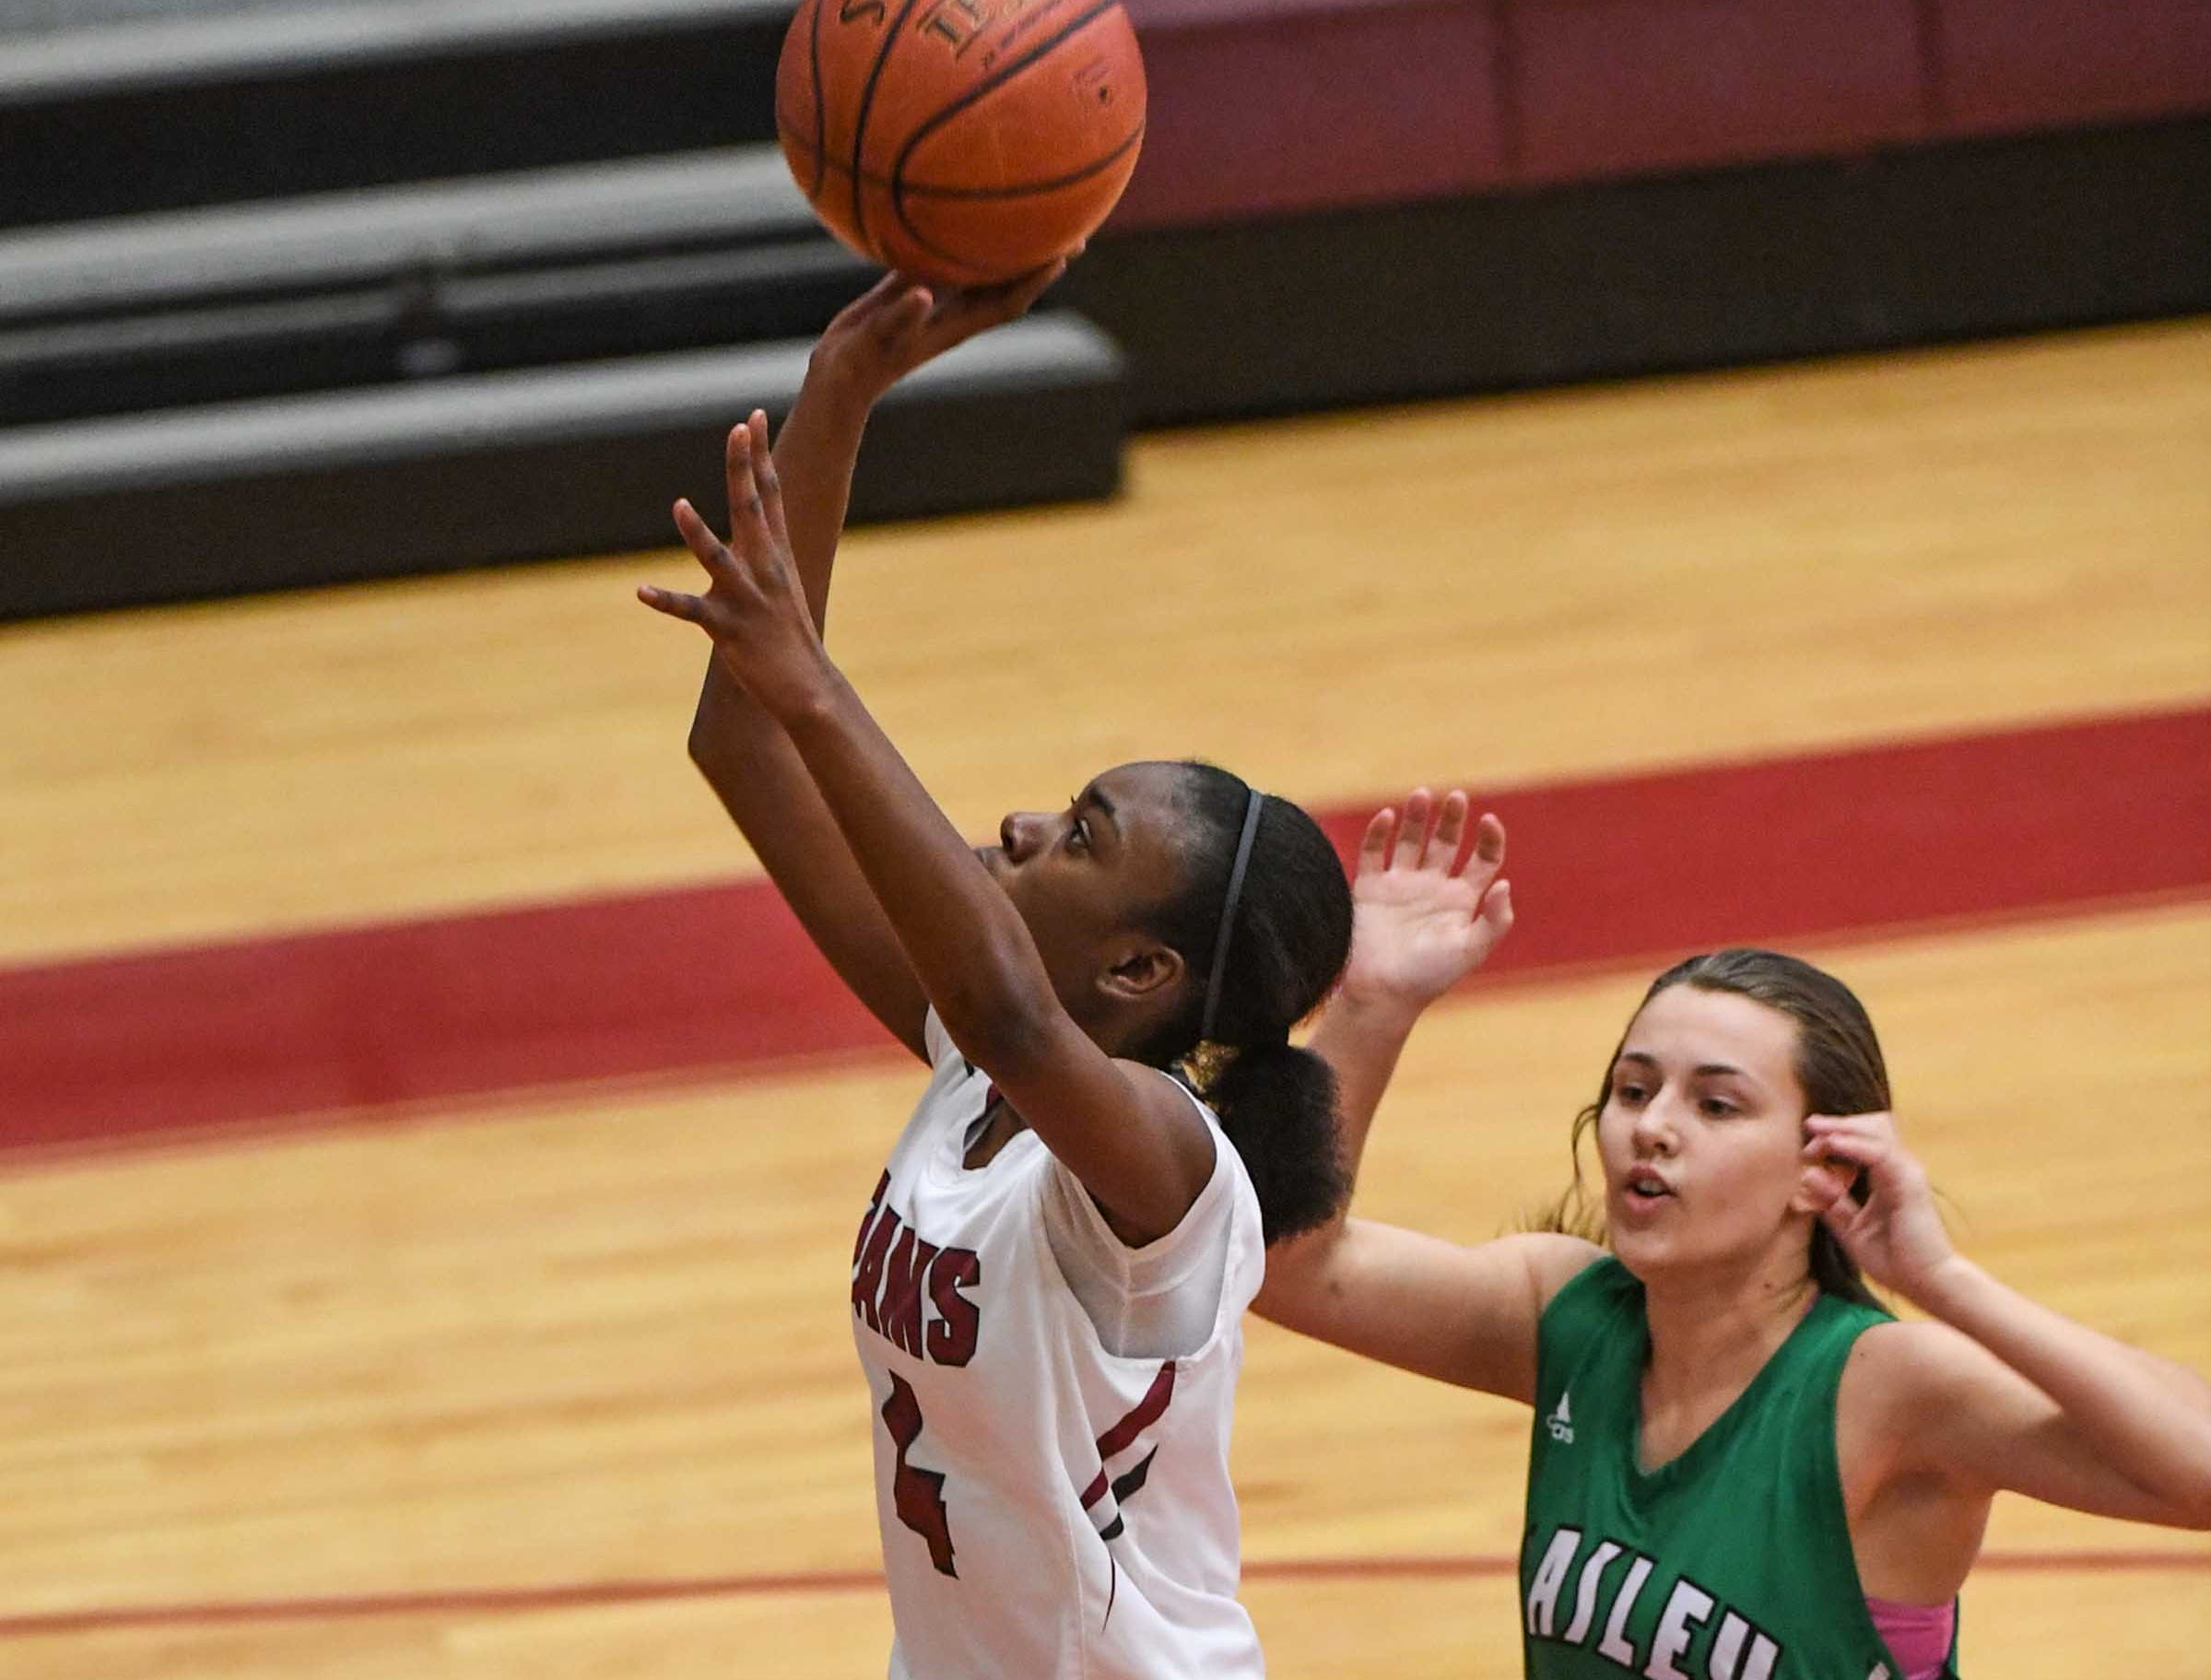 Westside freshman Aziyah Bell(4) shoots near Easley senior Aubrey Lewis(10) during the fourth quarter at Westside High School in Anderson on Friday.